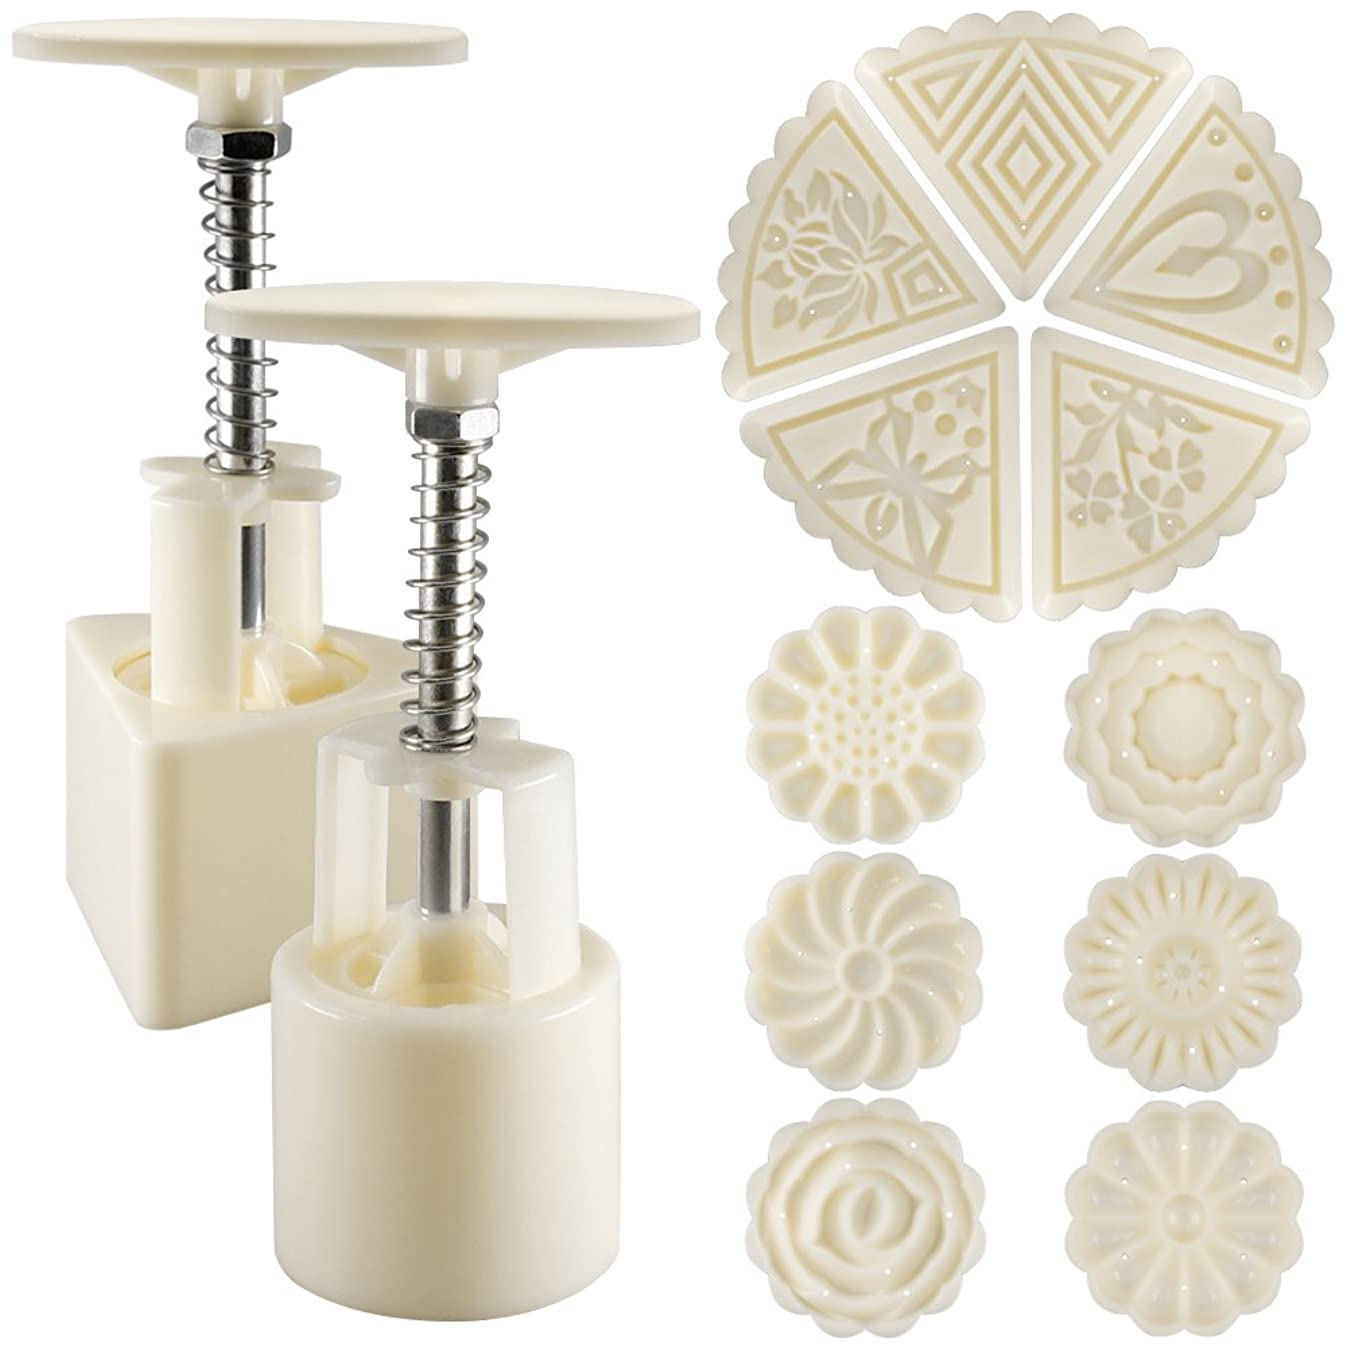 2 Sets Mooncake Mold Press 50g with 11 Stamps, SENHAI Flower and Triangle Shape Decoration Tools for Baking DIY Cookie - White